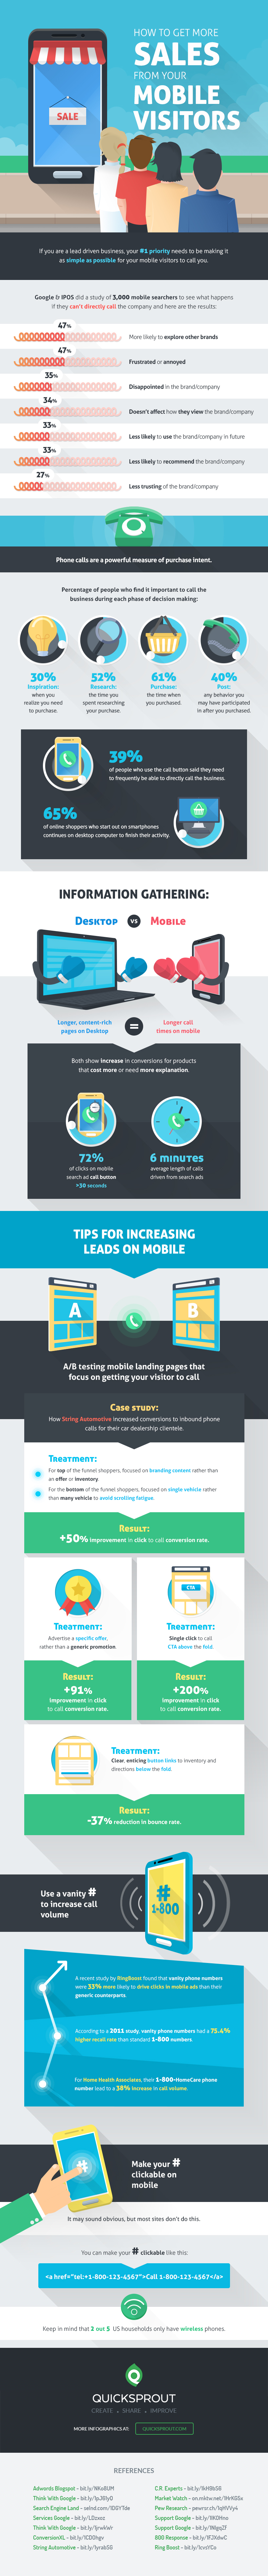 How to Turn Your Mobile Visitors into More Sales